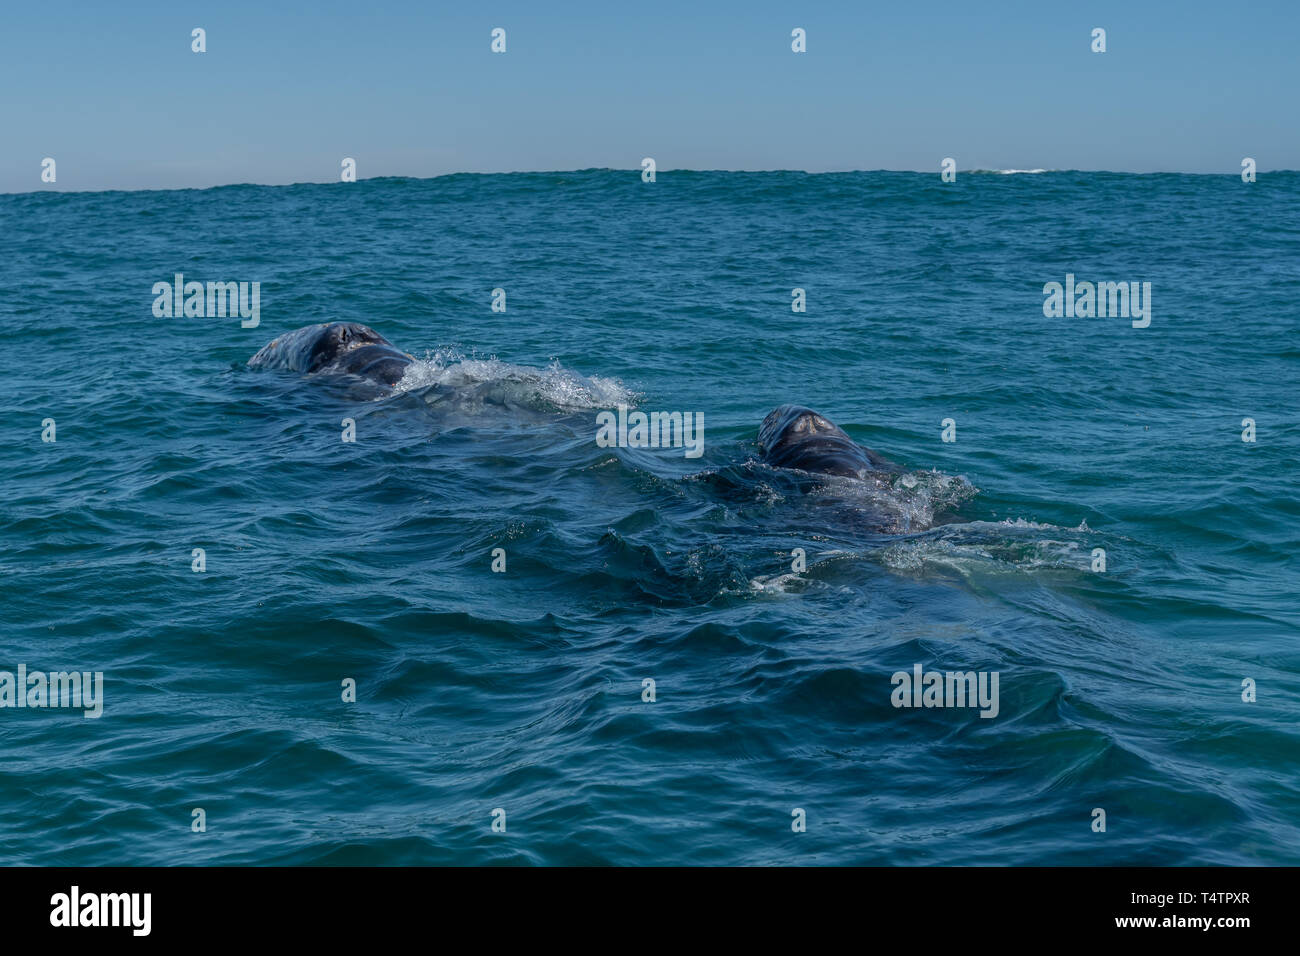 Gray whale (Eschrichtius robustus) mother and calf on the surface off the coast of Baja California, Mexico. Stock Photo